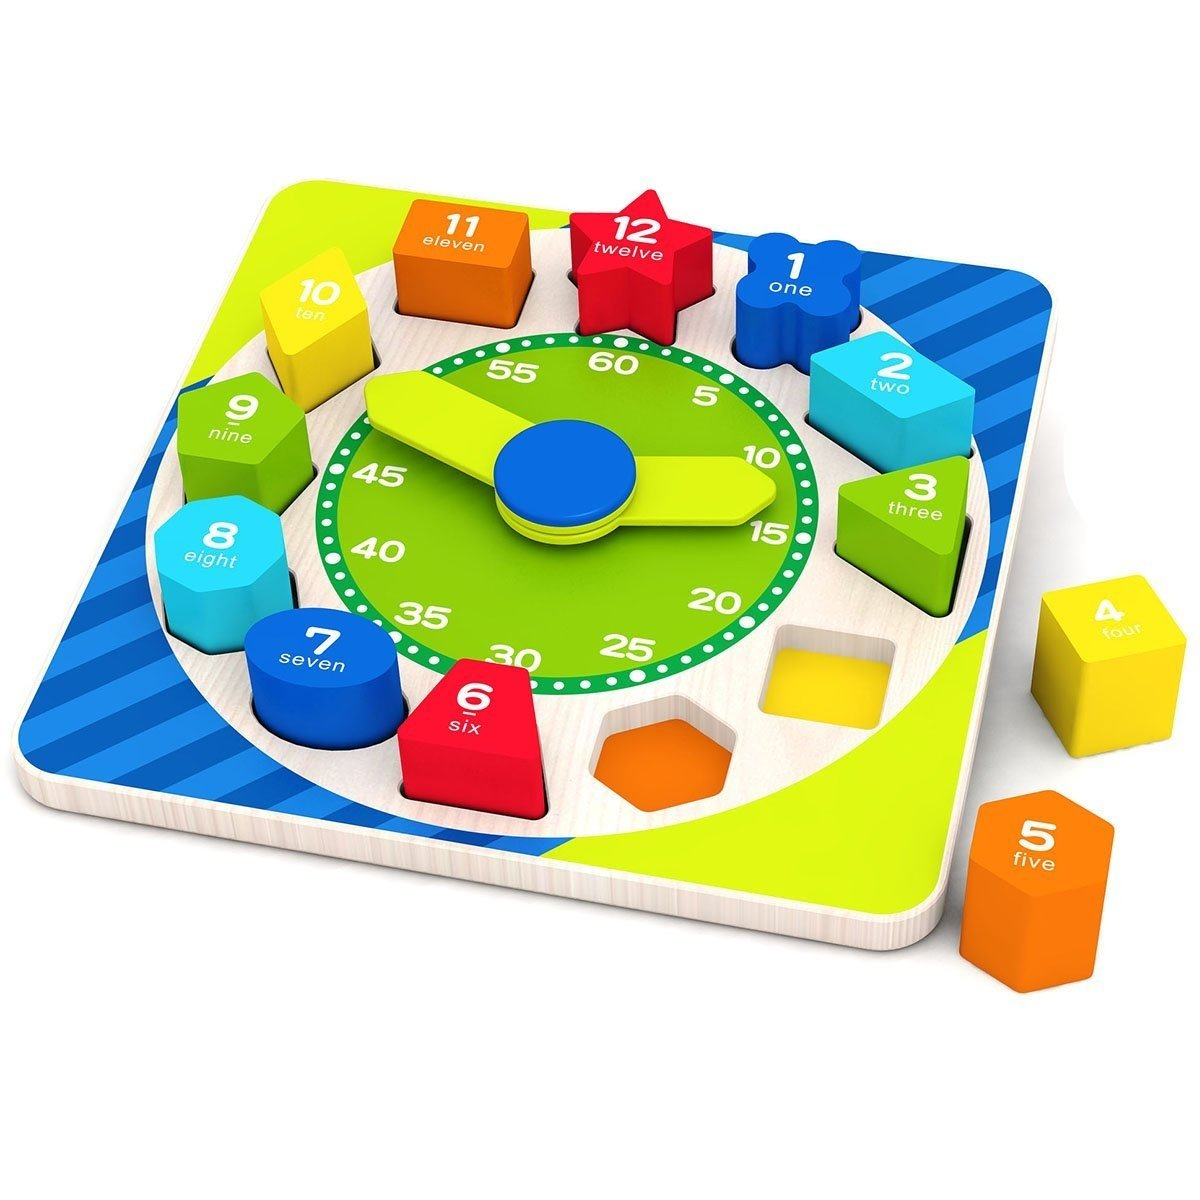 Big Spanich Wooden Shape Sorting Numbers Shapes Educational Toys Kids 18 Months Old Above (Learning Clock) Interactivity Study Skills